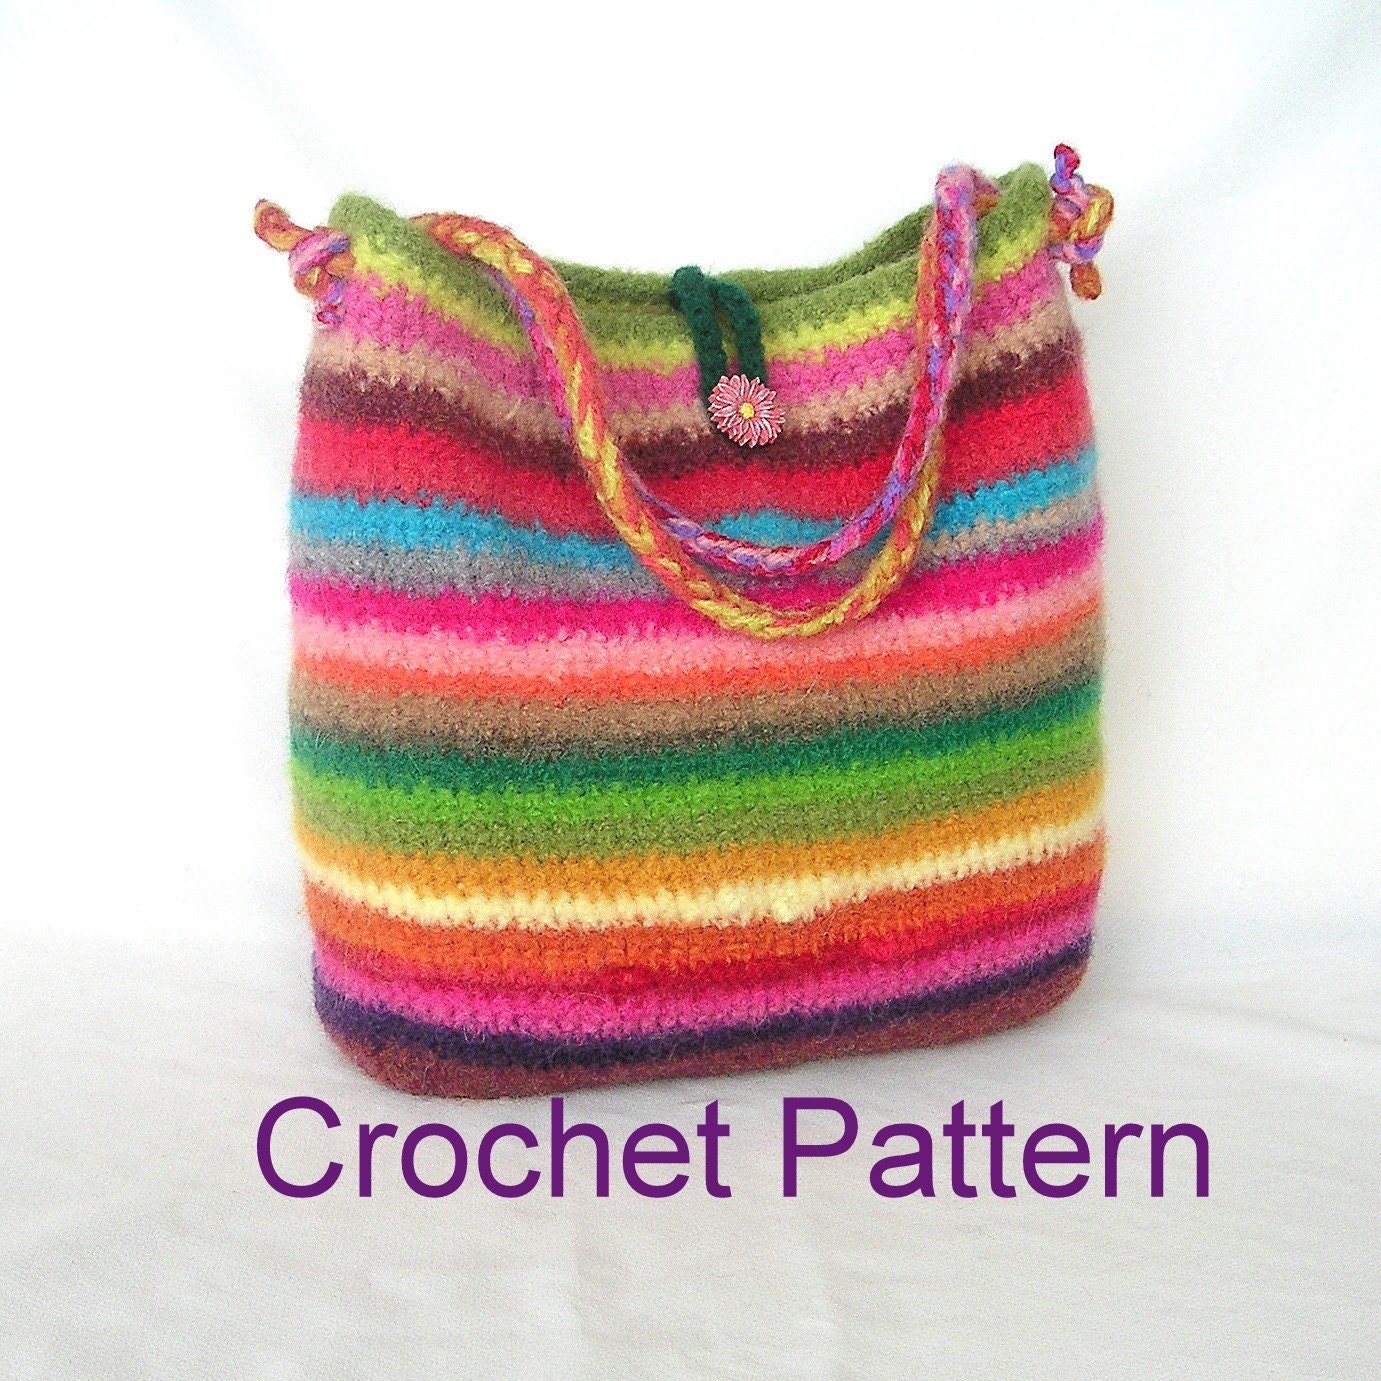 Crochet Simple Bag : How to make Easy Crochet Bag Pattern by GraceKnittingPattern